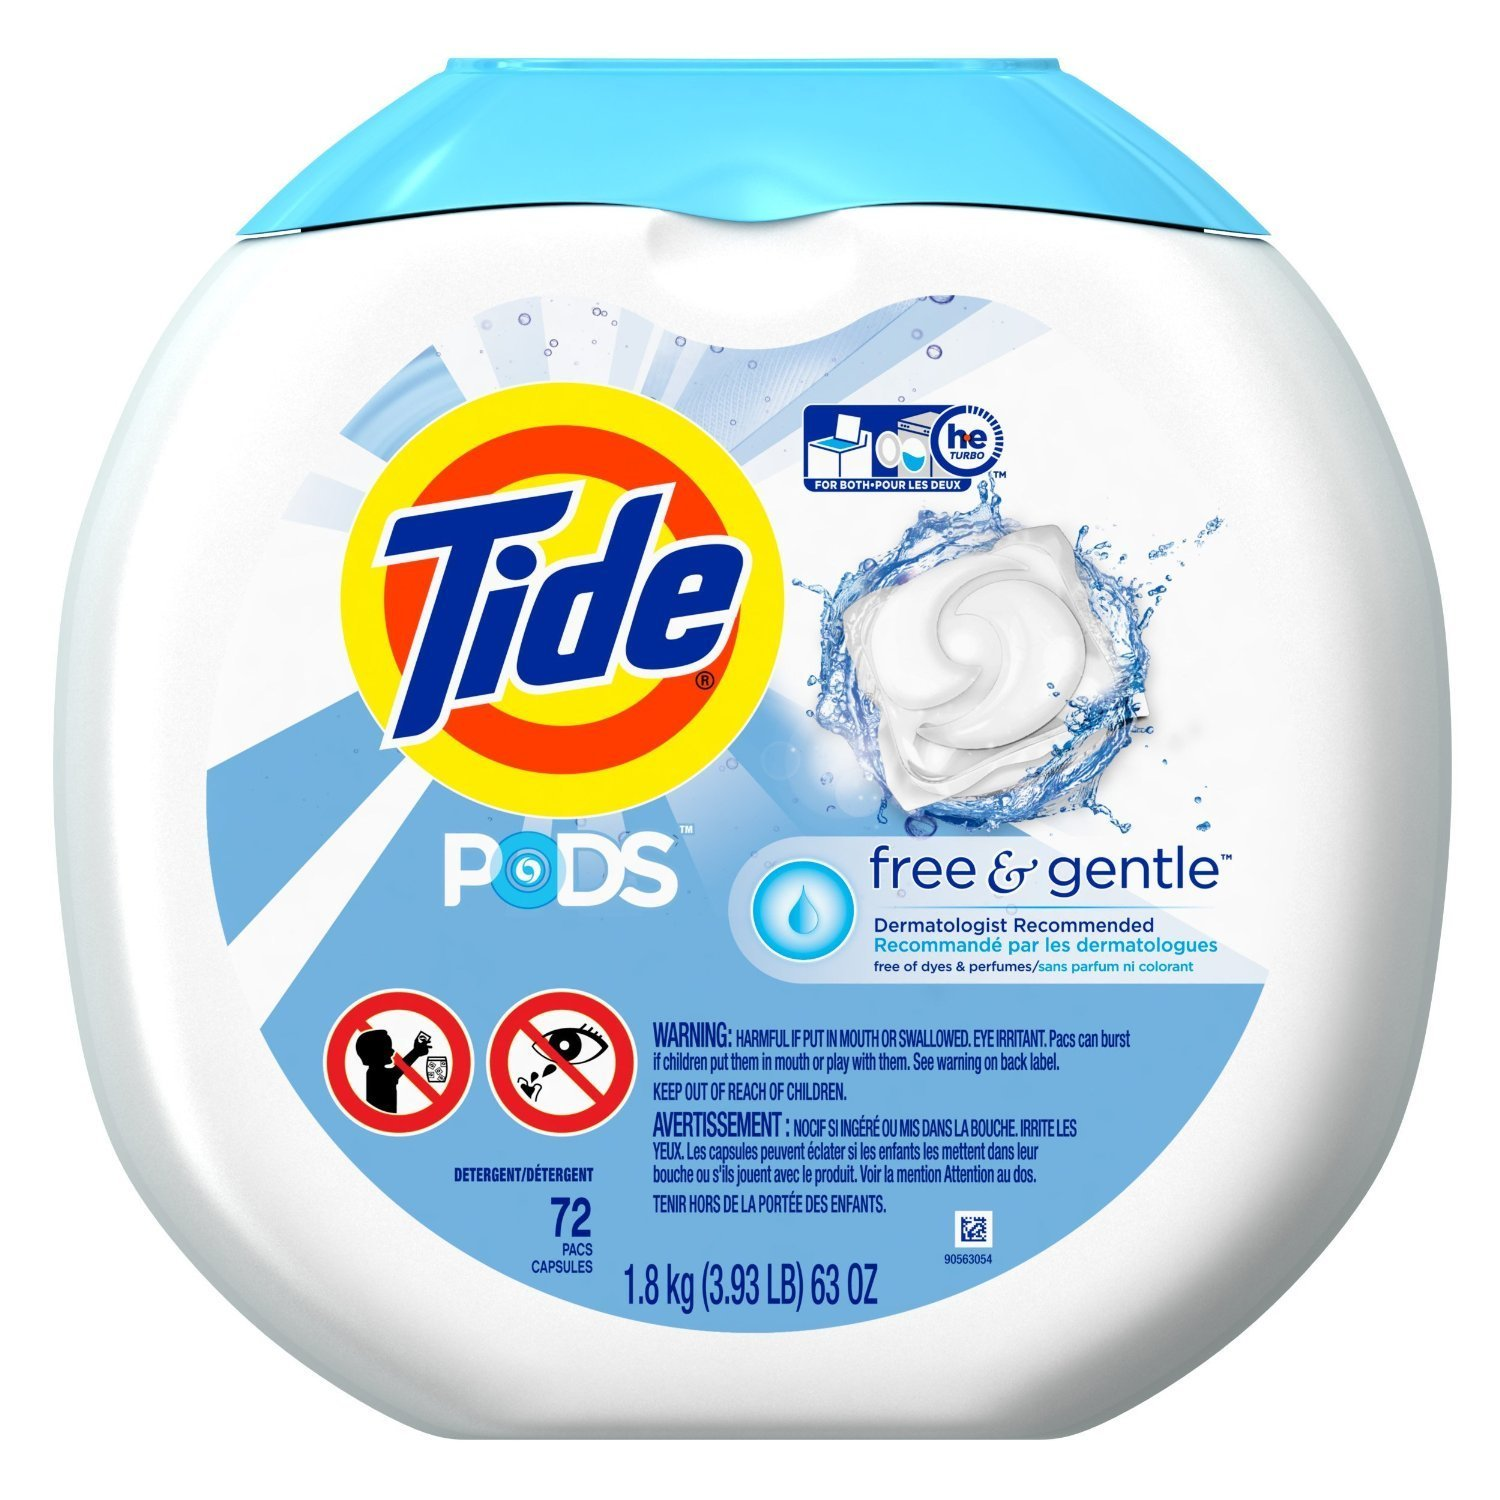 High Efficiency Detergent Brands Amazoncom Tide Pods Free Gentle He Turbo Laundry Detergent